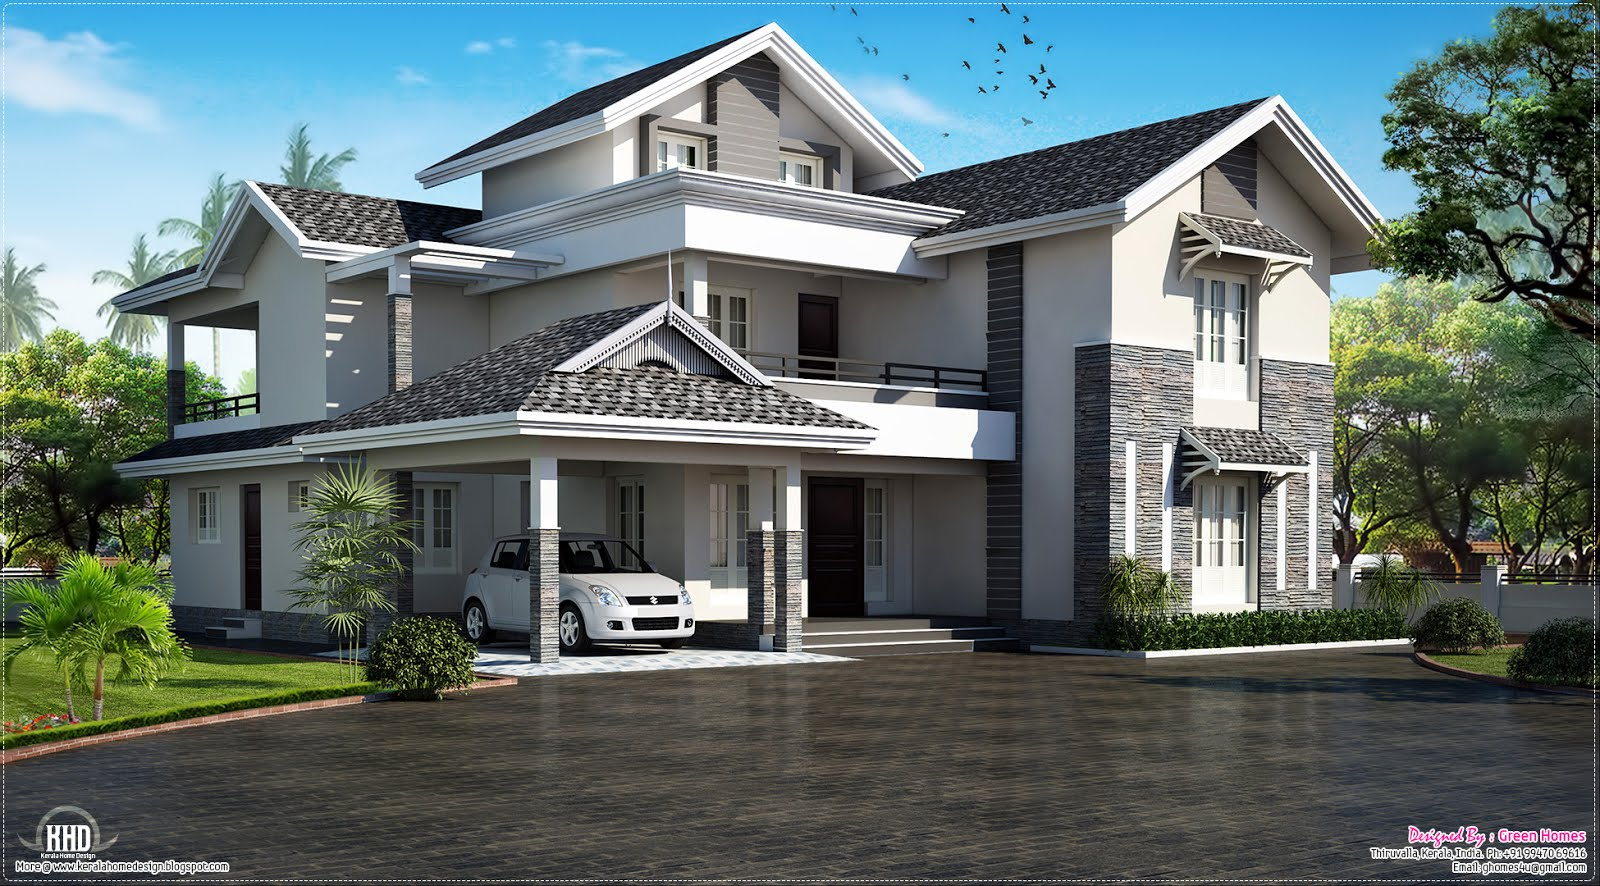 Modern sloping roof house villa design kerala home House modern